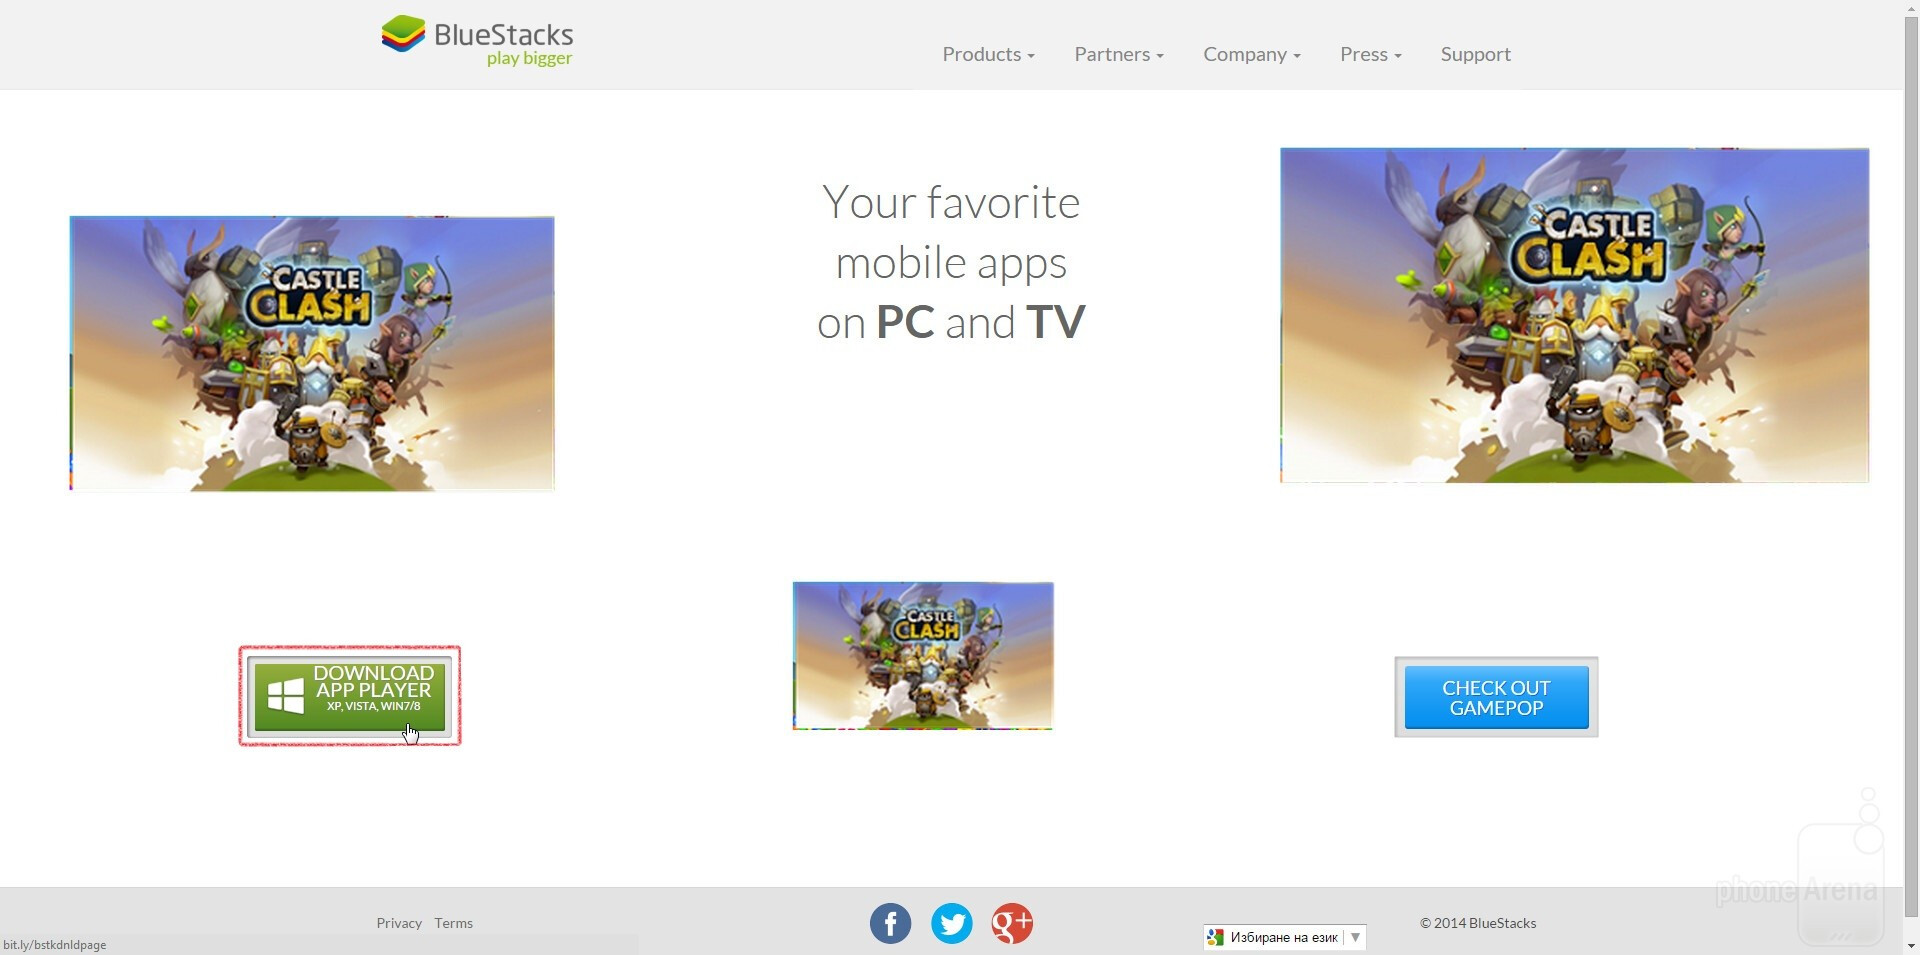 How to install Android 4 4 KitKat with Play Store on your PC